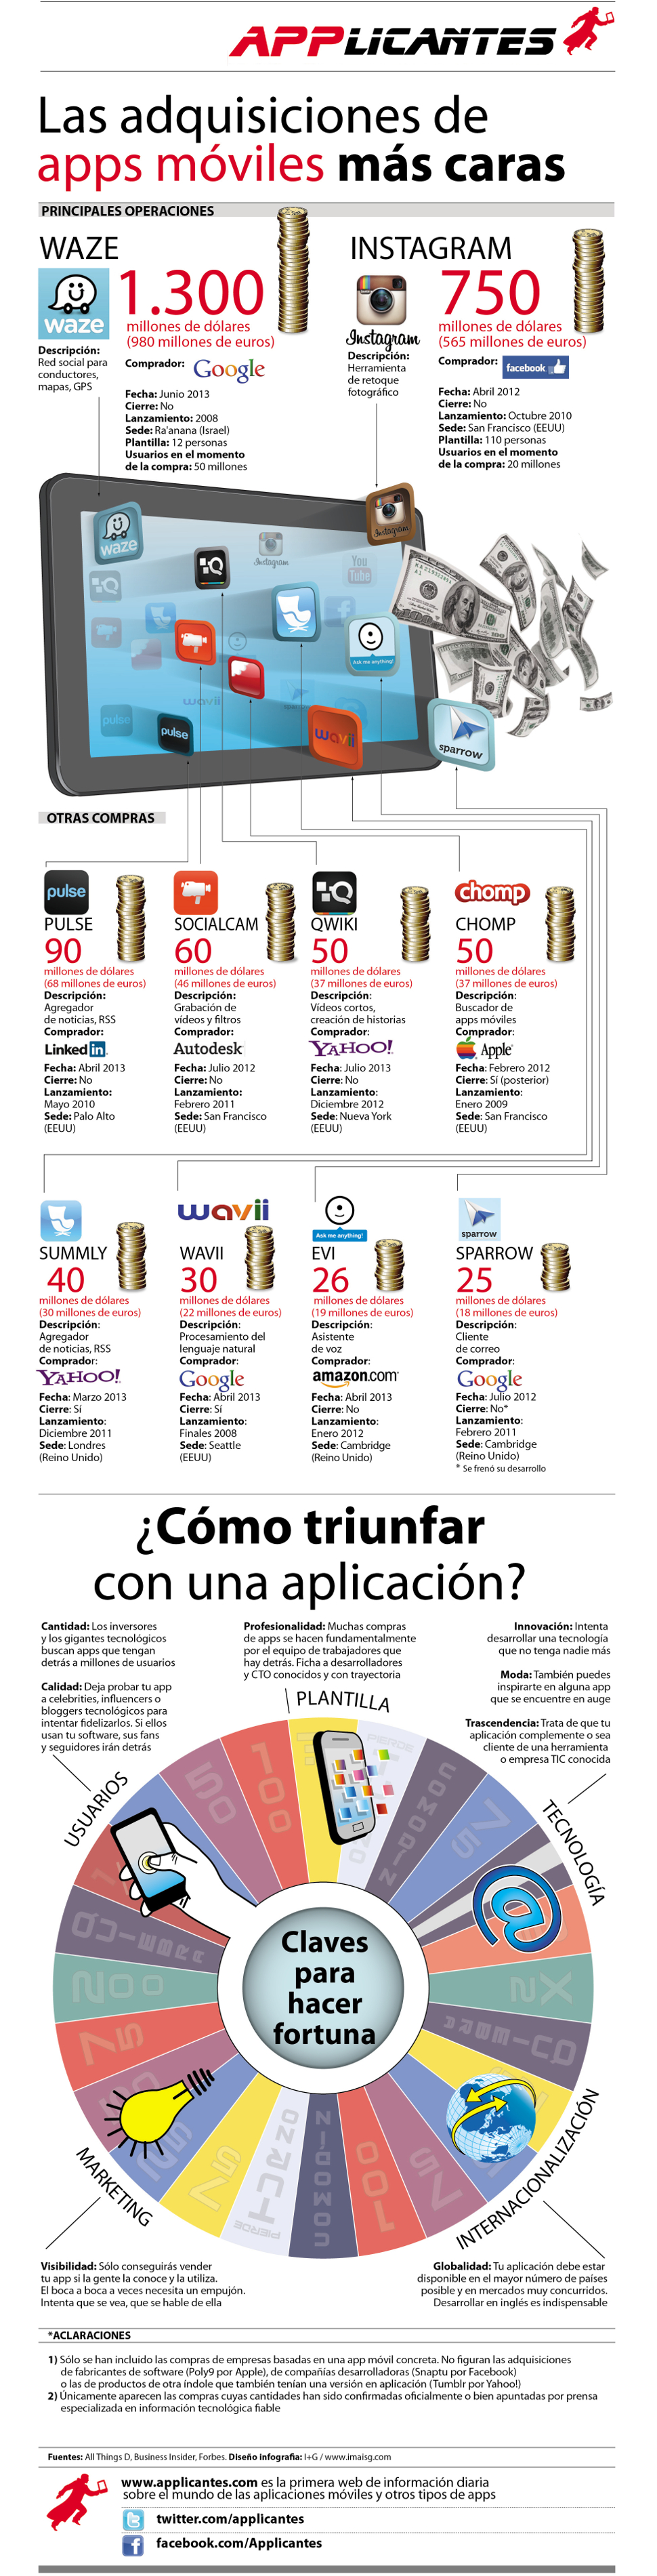 infografia-compras-apps-moviles